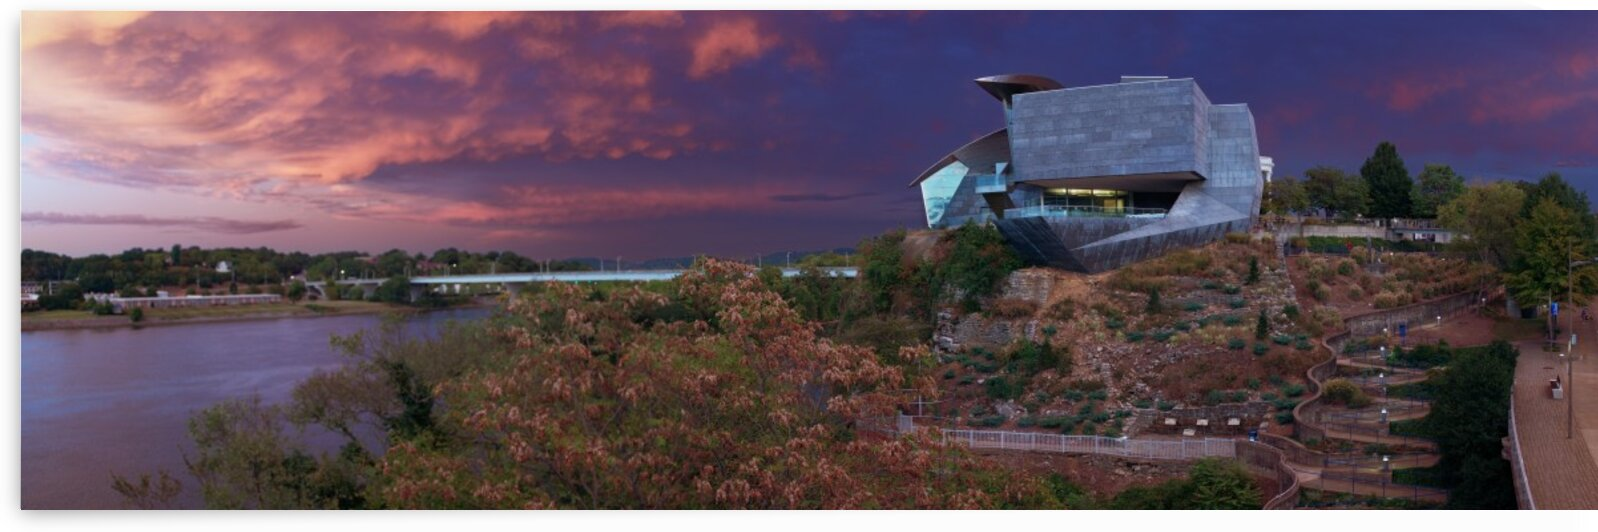 Sunrise Panorama 2 by SimplyNoogaPics